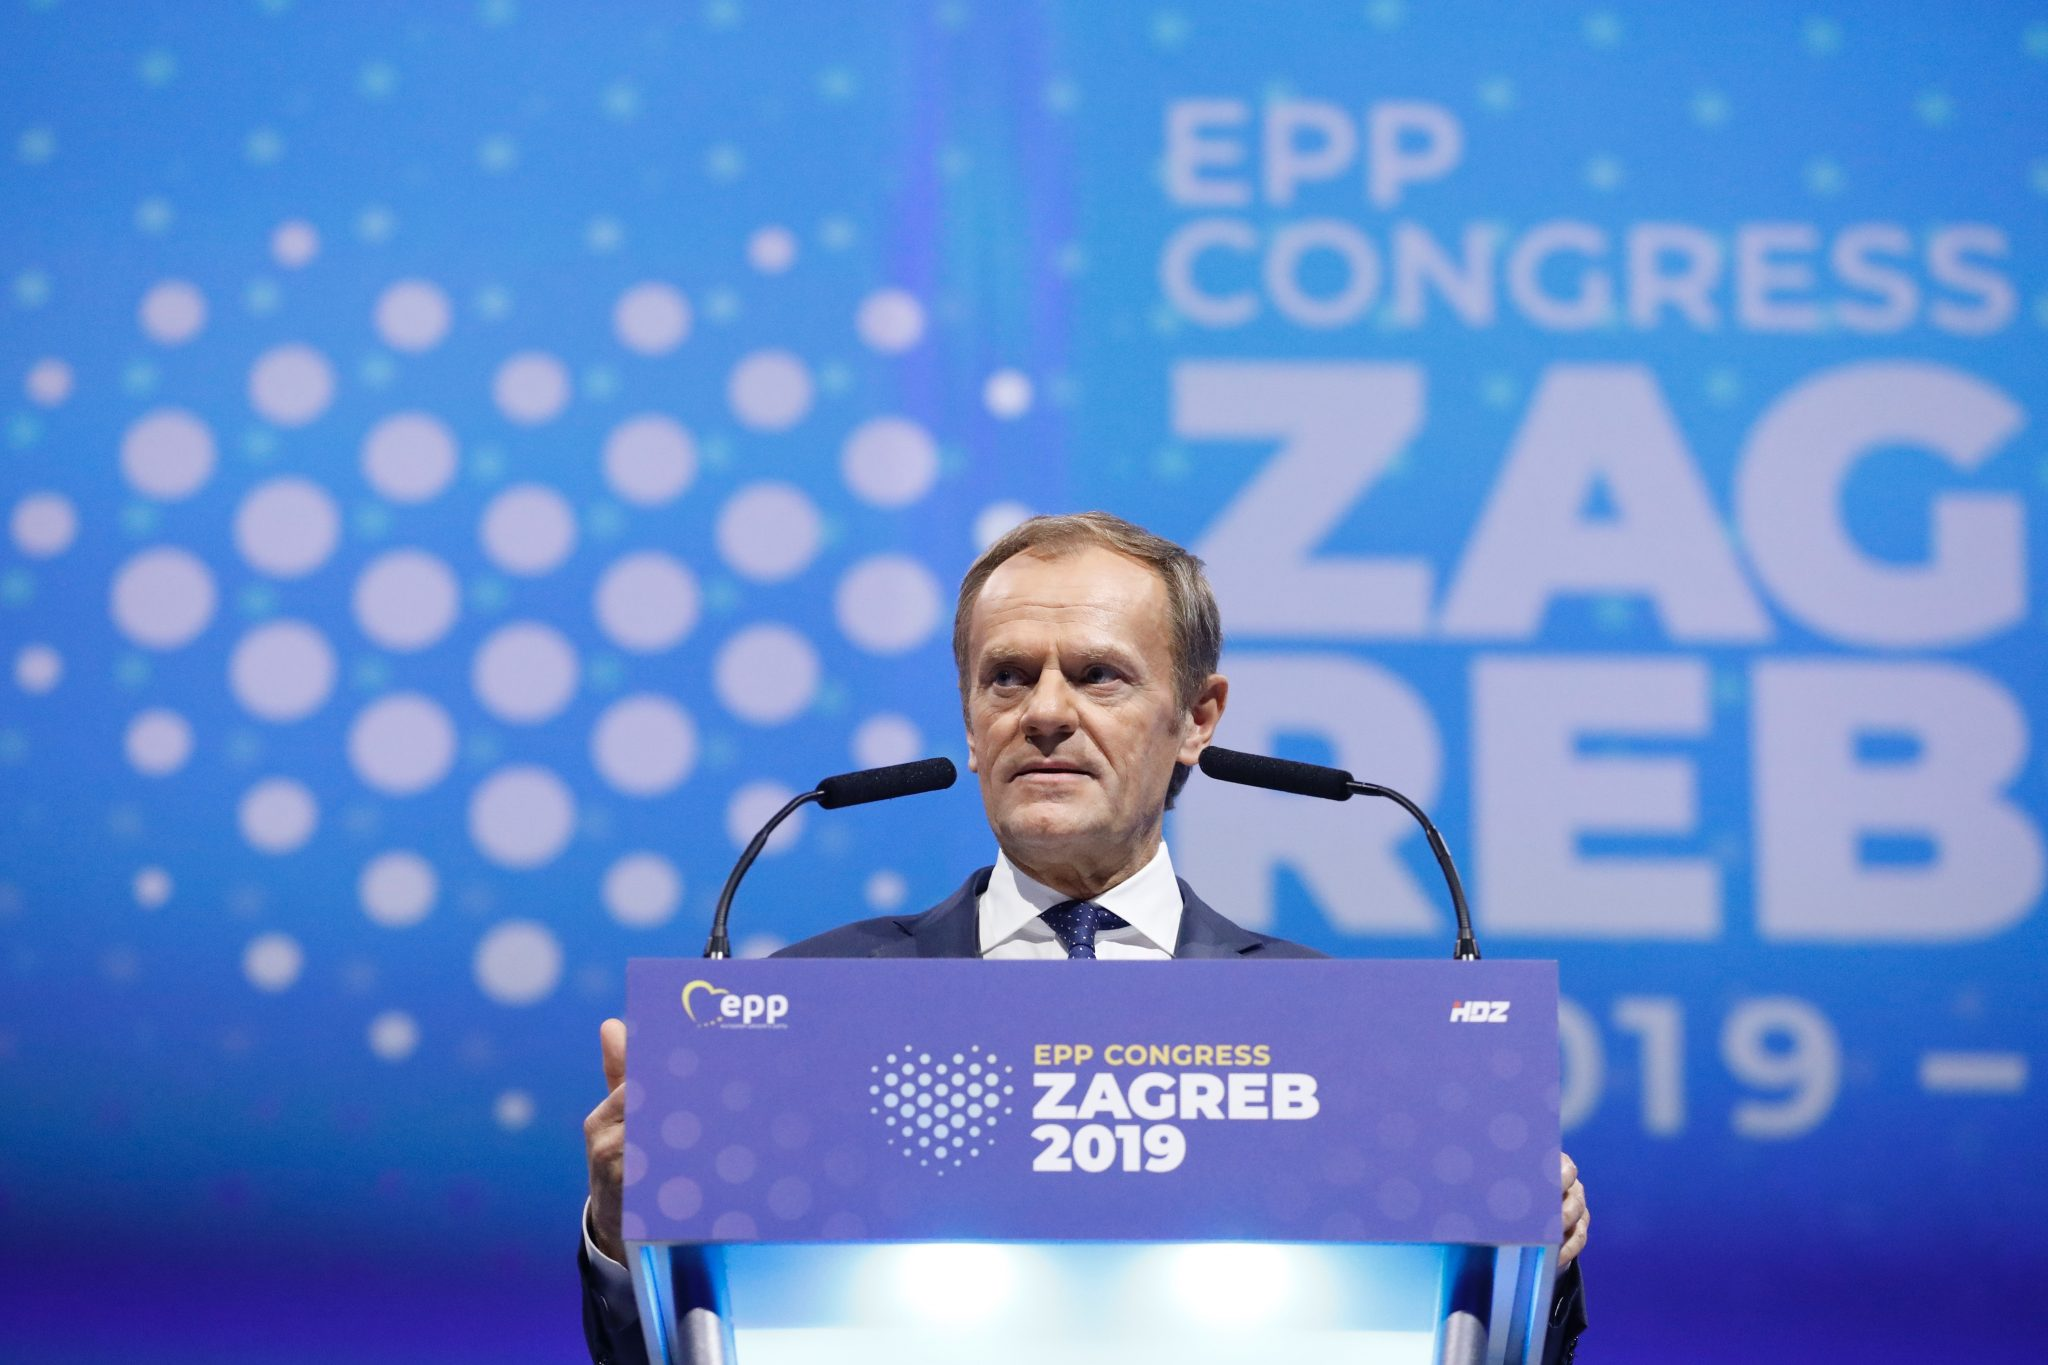 New EPP Leader Tusk Declares Fight against Populists